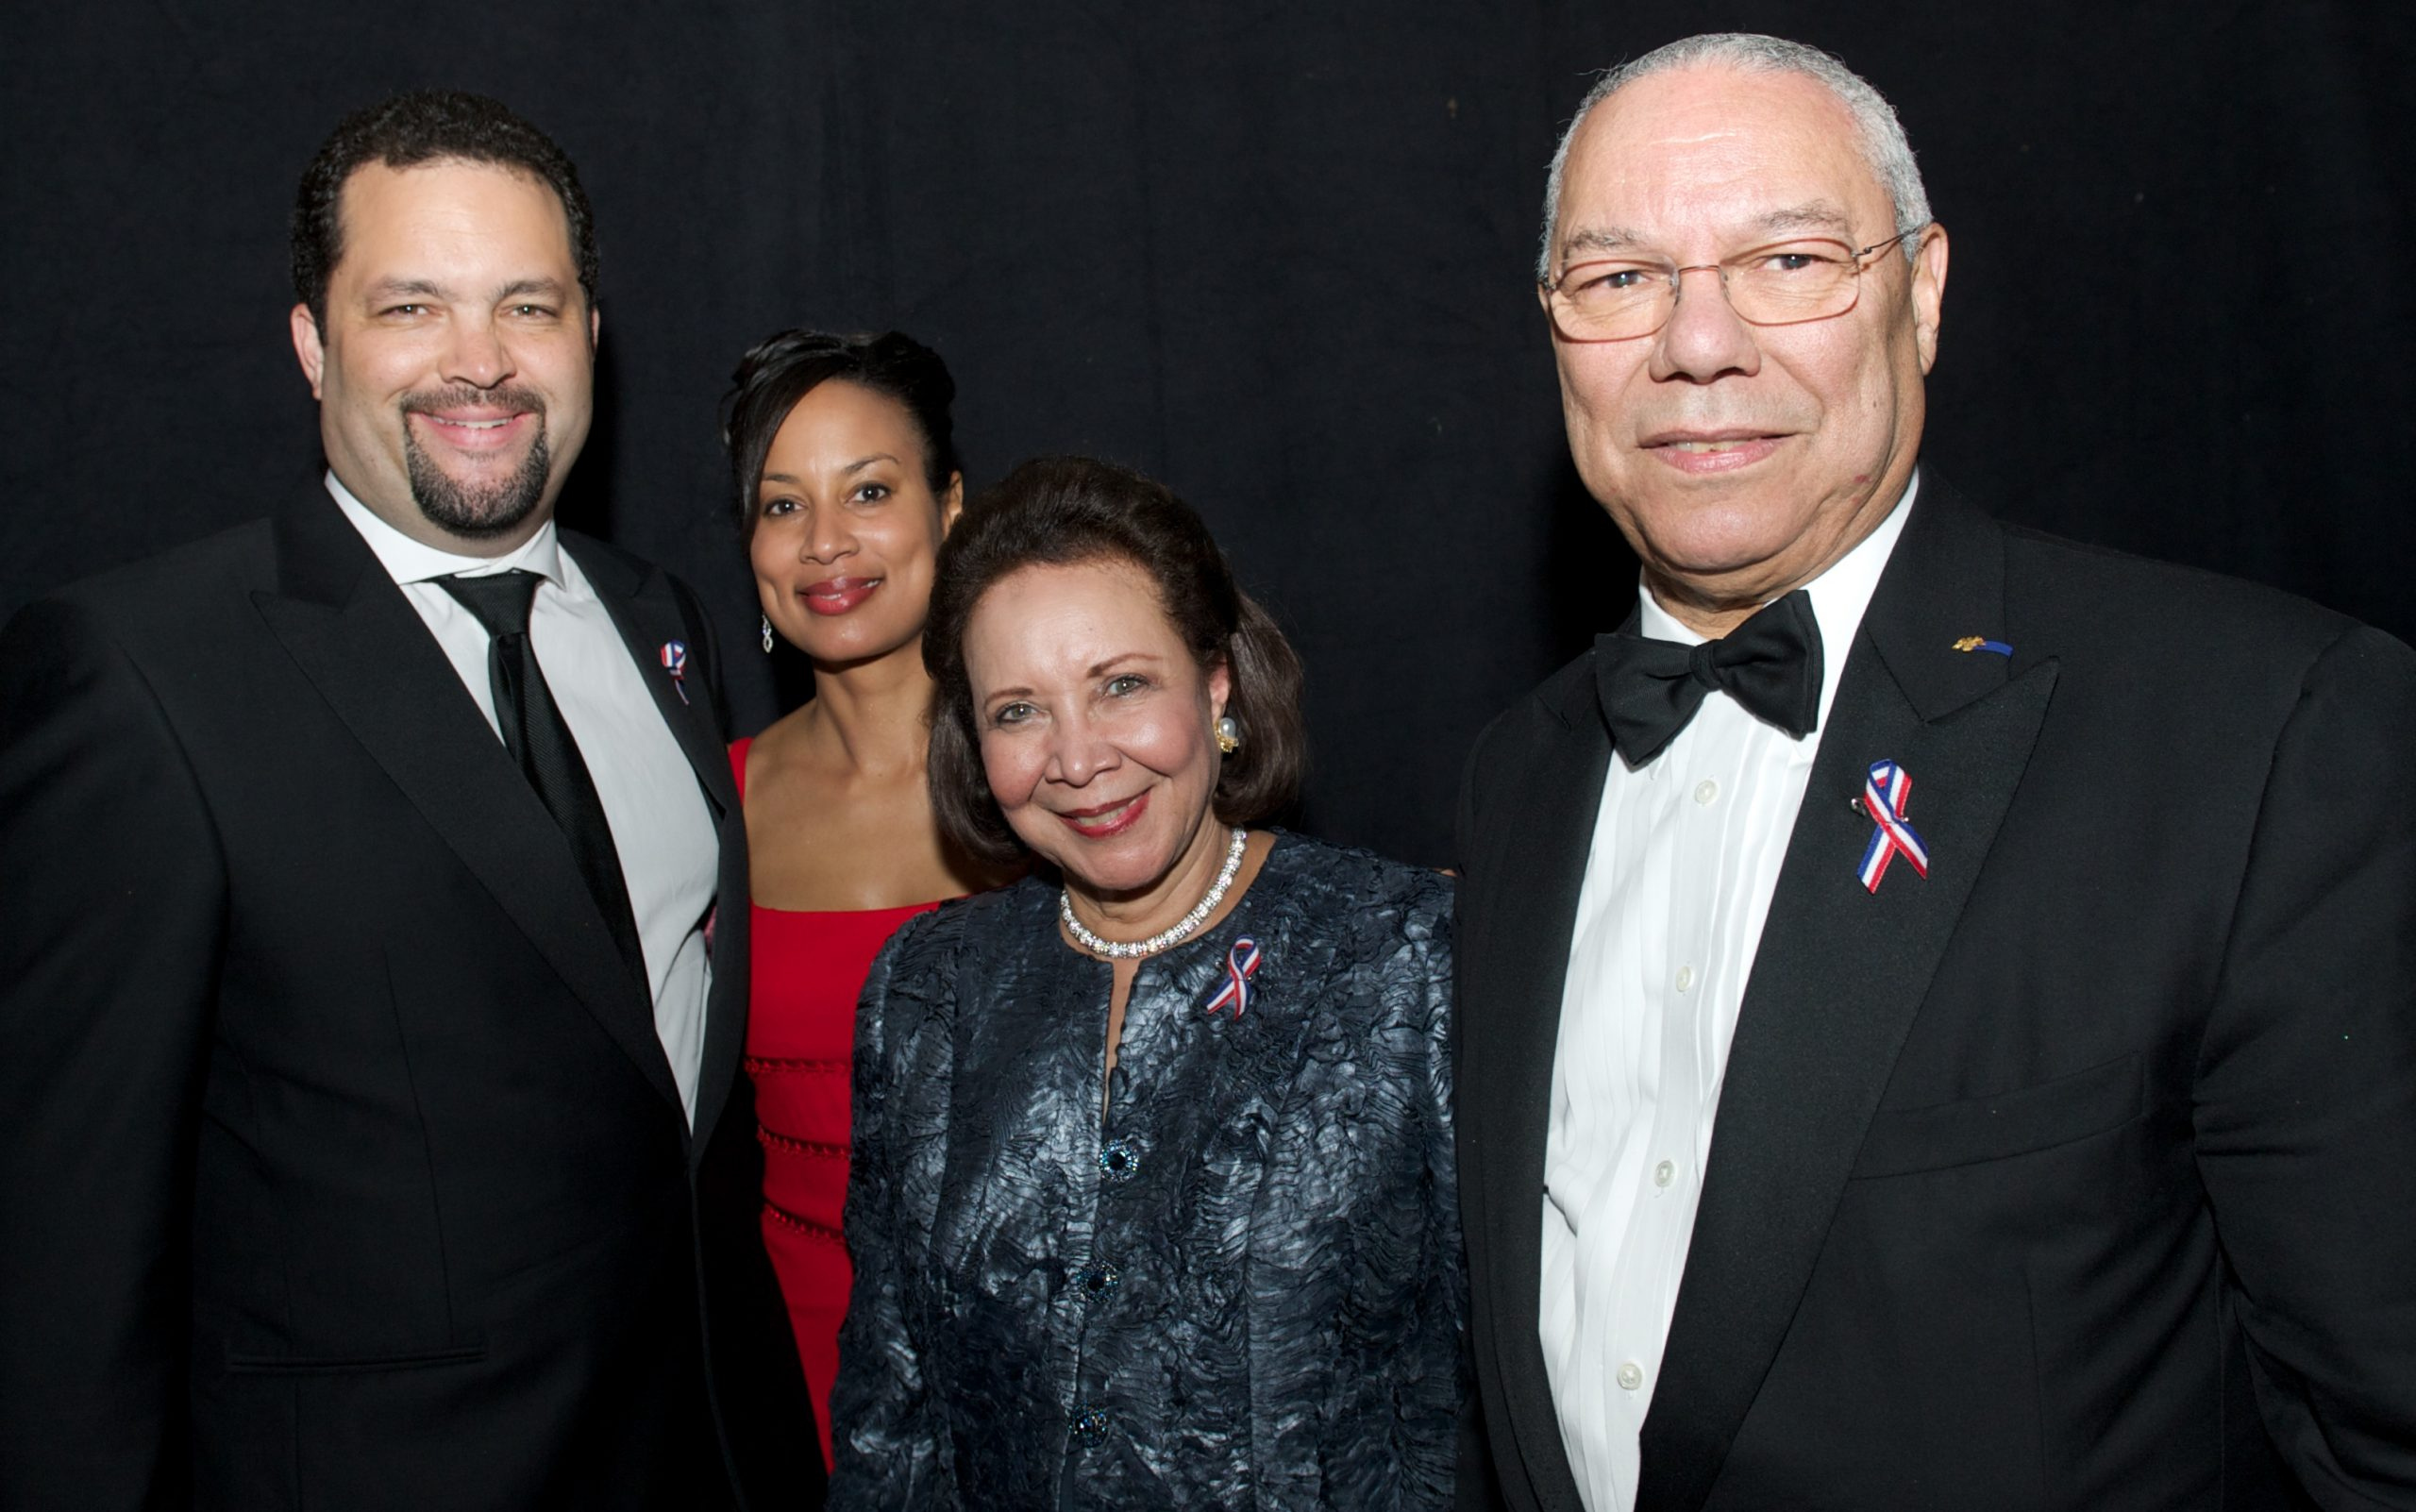 (L-R) President of the NAACP, Ben Jealous is joined with his wife Lia Epperson, Alma Powell and Colin Powell at the 42nd NAACP Images Awards in Los Angeles on Friday March 4, 2011./AP Photo/Earl GibsonIII